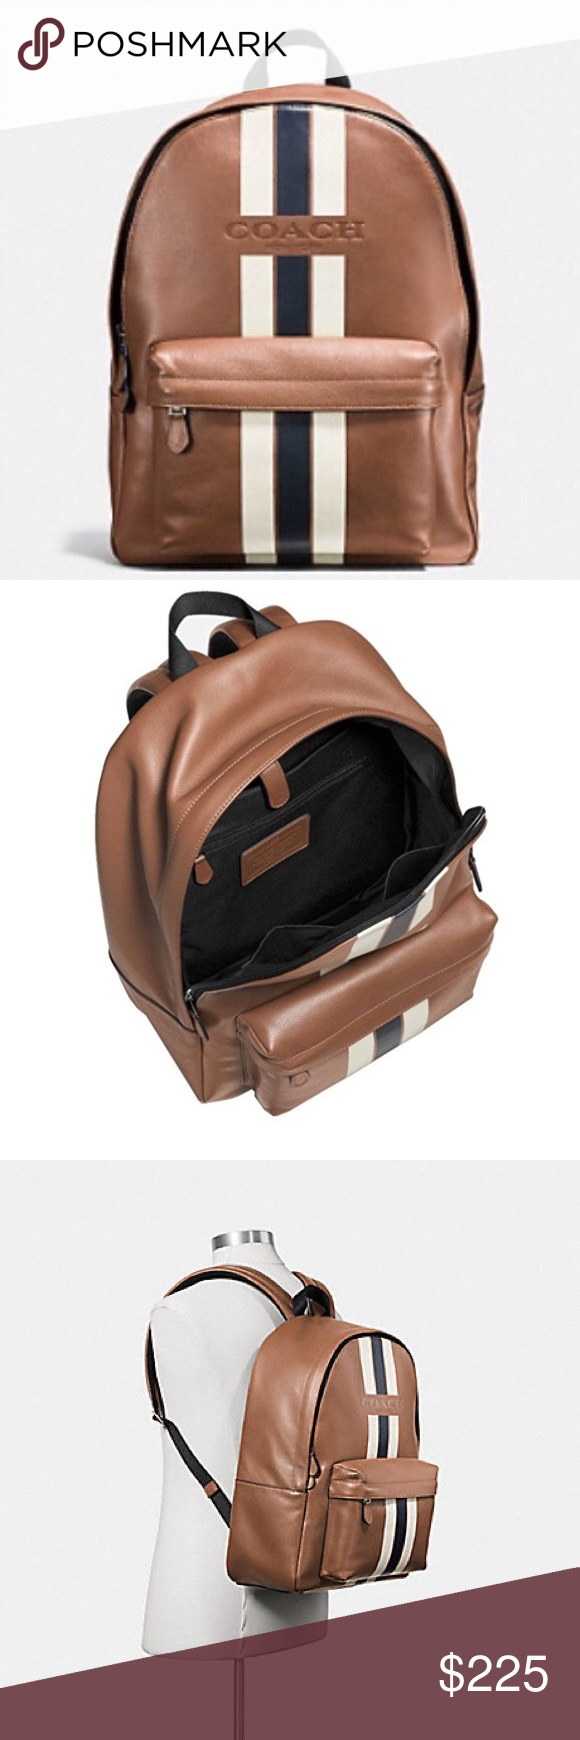 dc0385c39857 Coach Charles backpack in Varsity Leather Like new authentic Coach backpack  with varsity leather